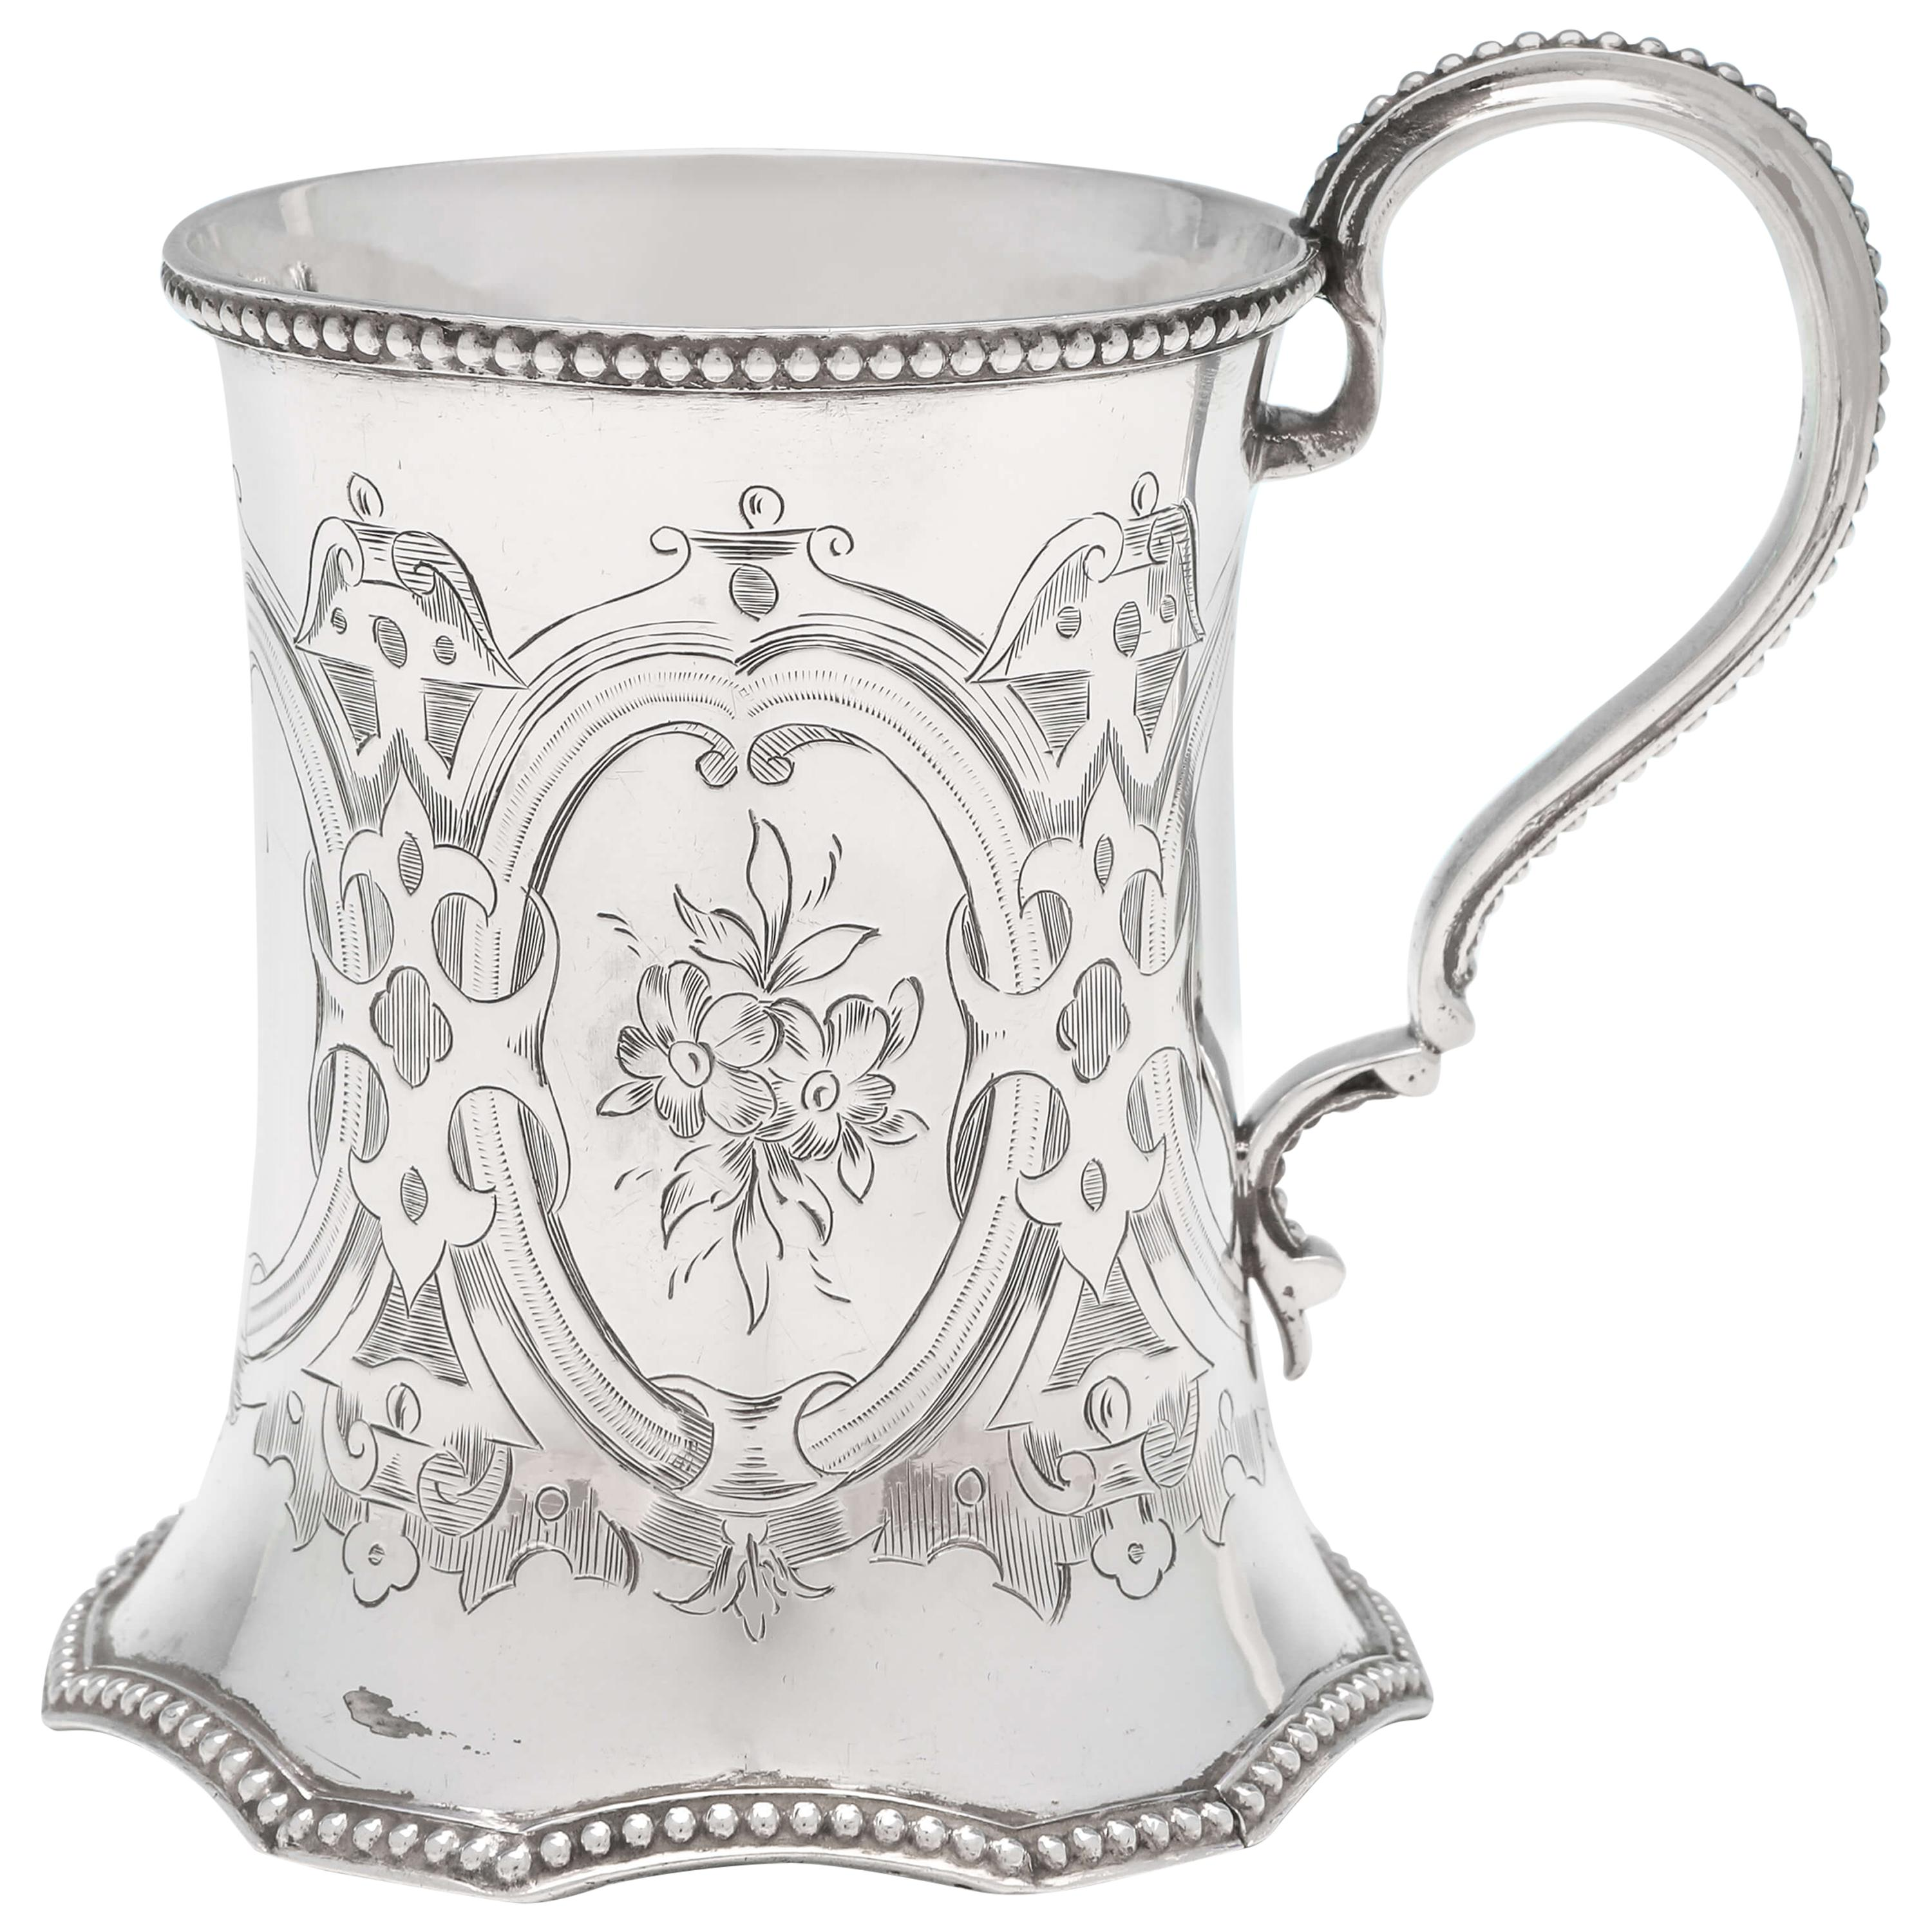 19th Century Victorian Sterling Silver Christening Mug by Robert Hennell II 1858